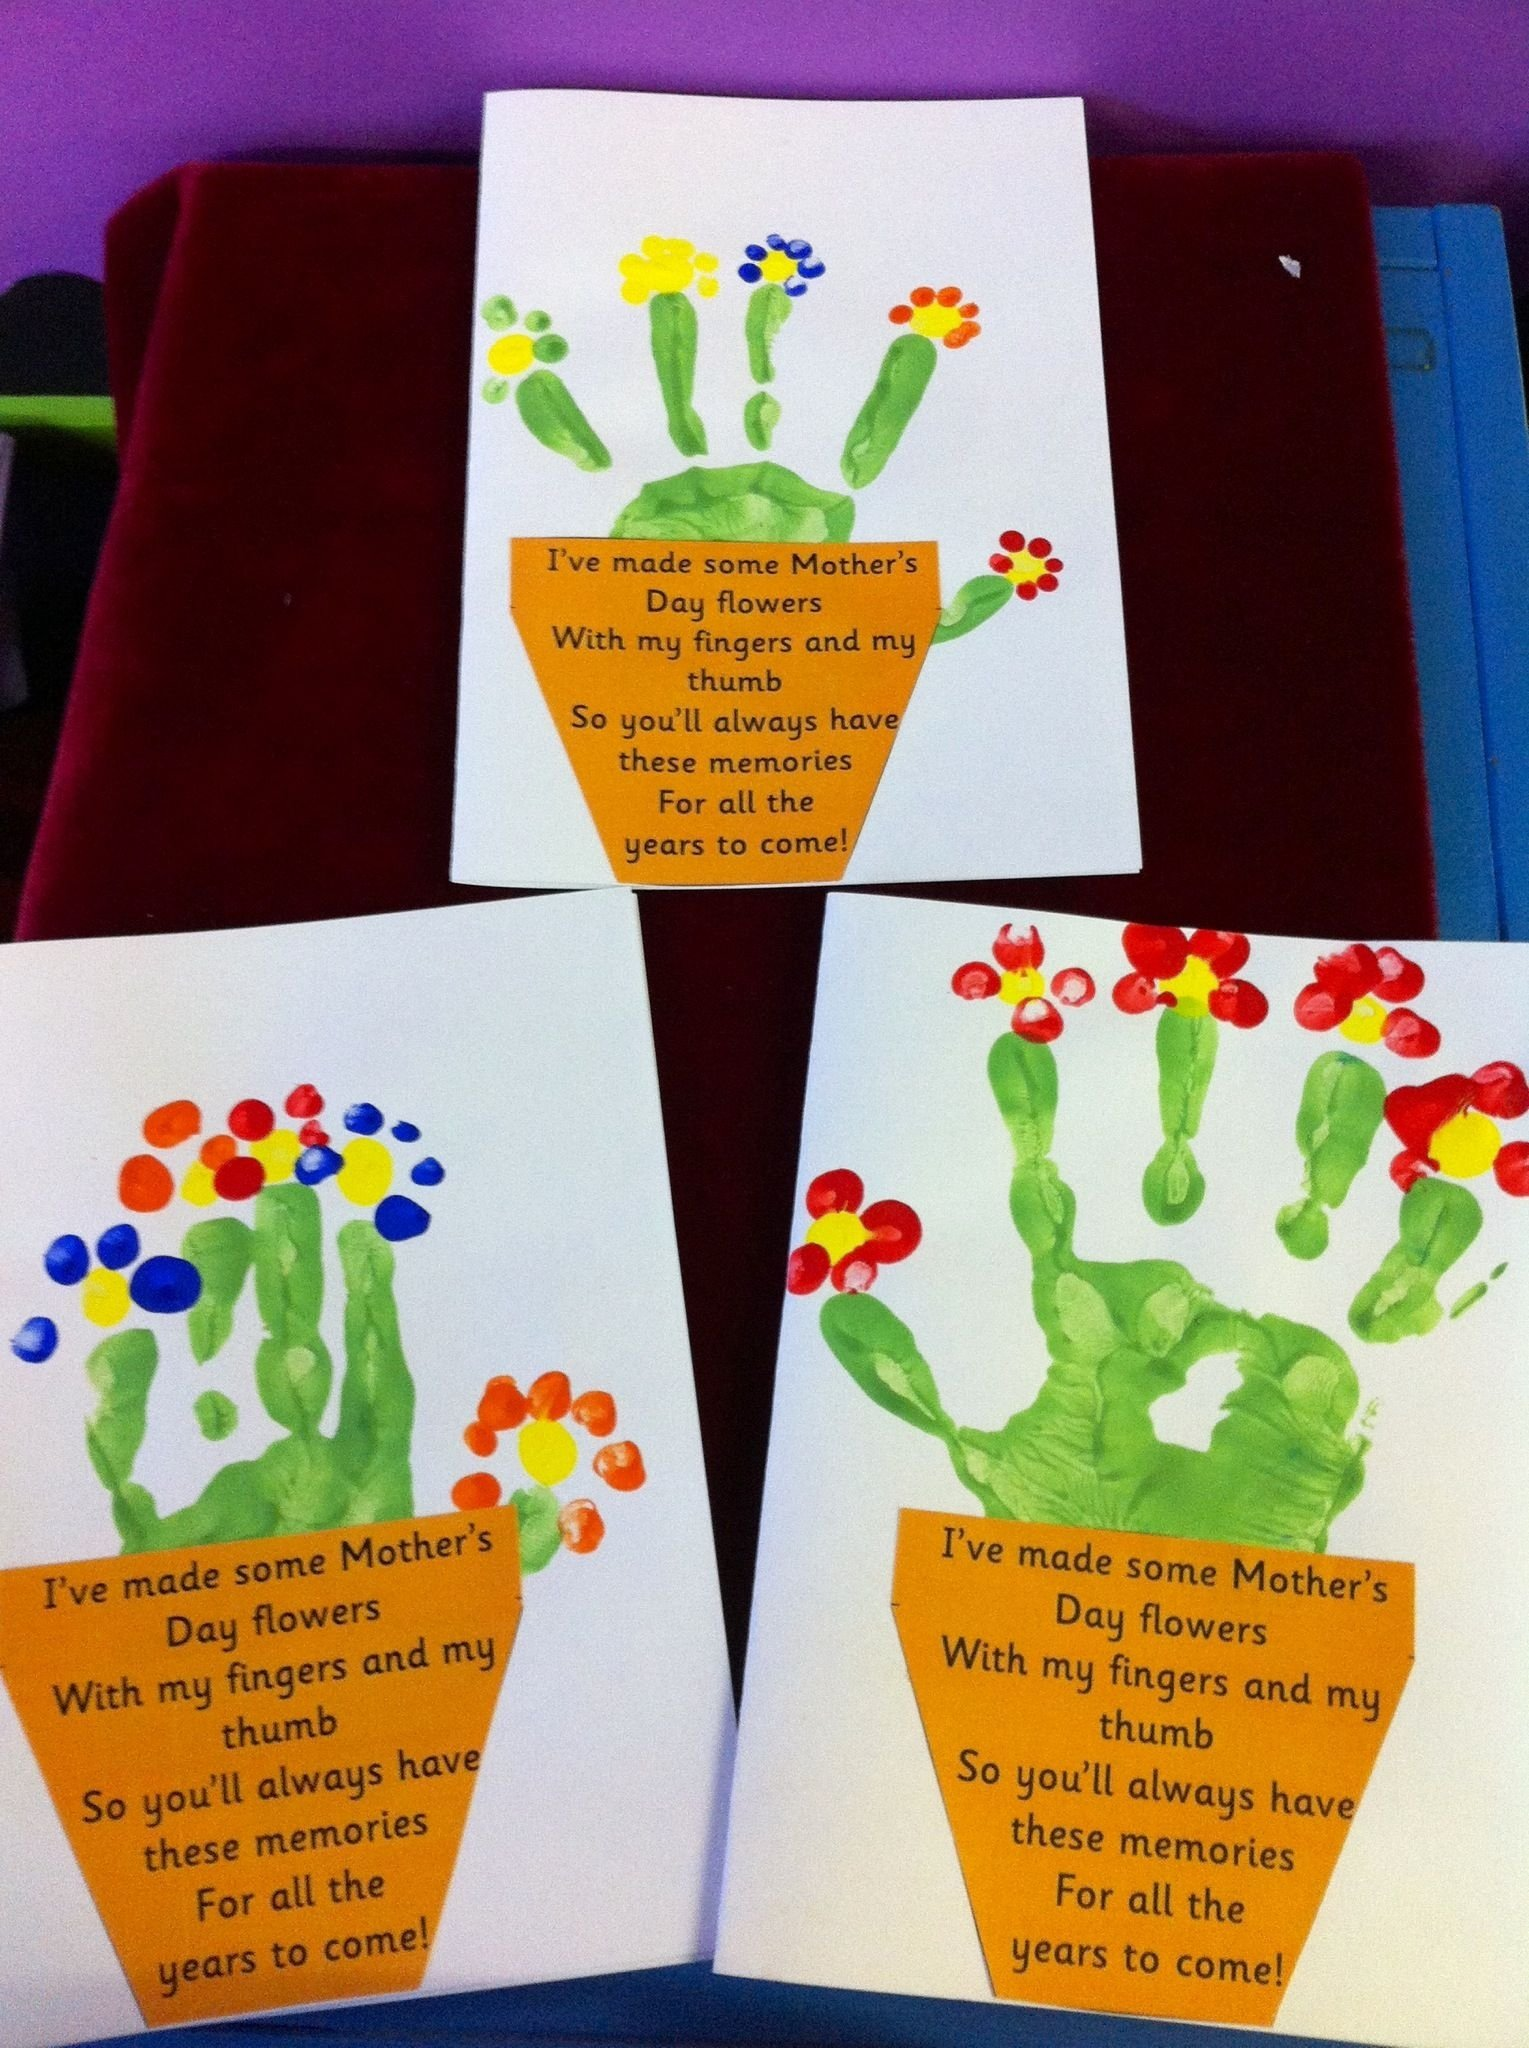 10 Fabulous Craft Ideas For Mothers Day 12 easy mothers day crafts for toddlers to make toddlers and twos 4 2020